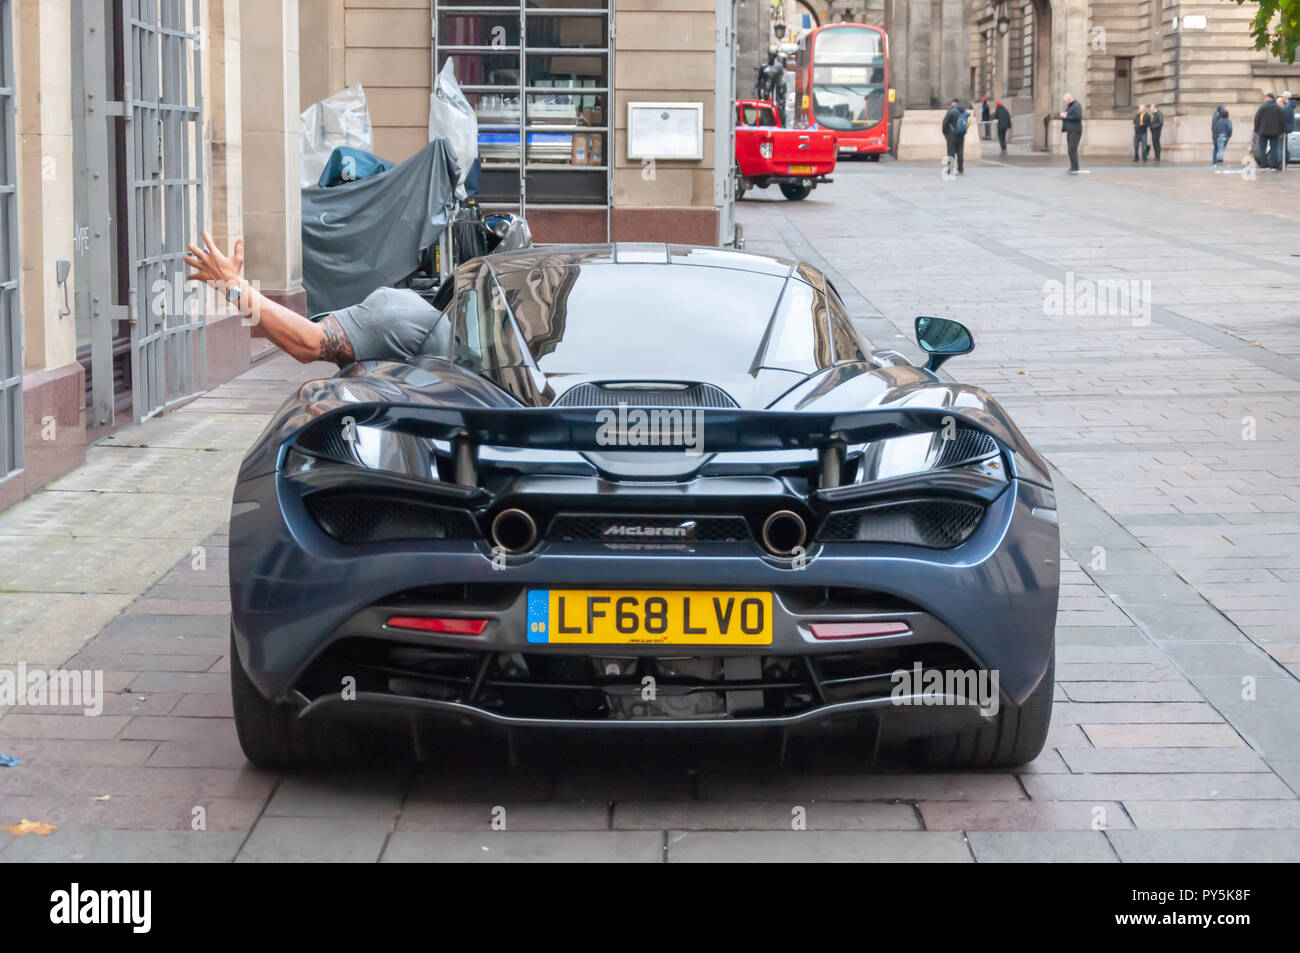 Glasgow, Scotland, UK. 25th October, 2018. On the streets of the City Centre filming of the blockbuster movie Hobbs & Shaw which is a spin-off of the car chase franchise Fast & Furious. Credit: Skully/Alamy Live News - Stock Image